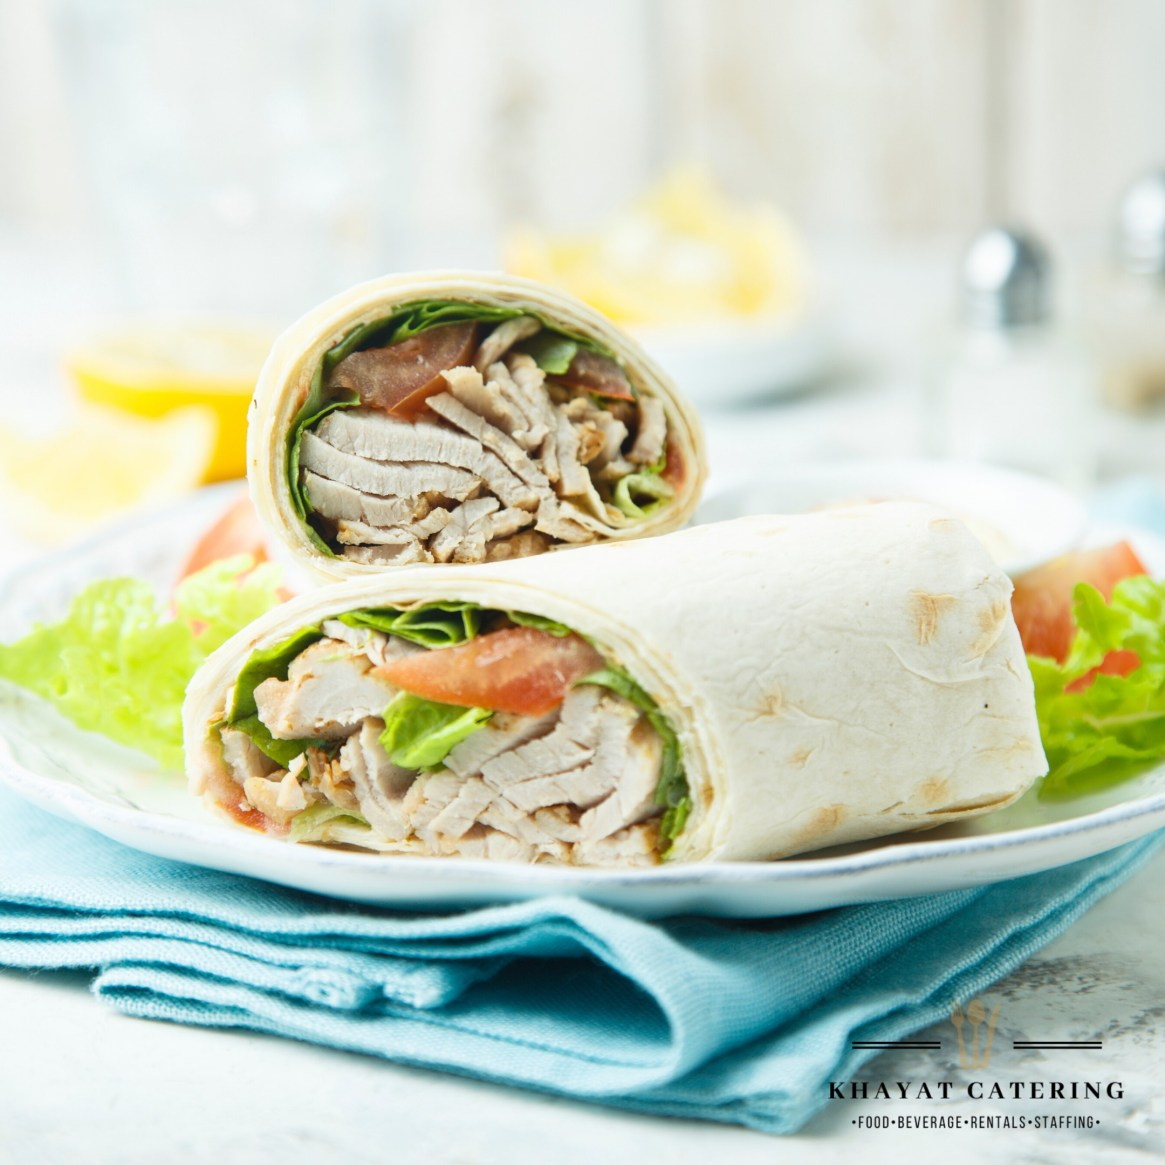 Khayat Catering turkey blt wrap